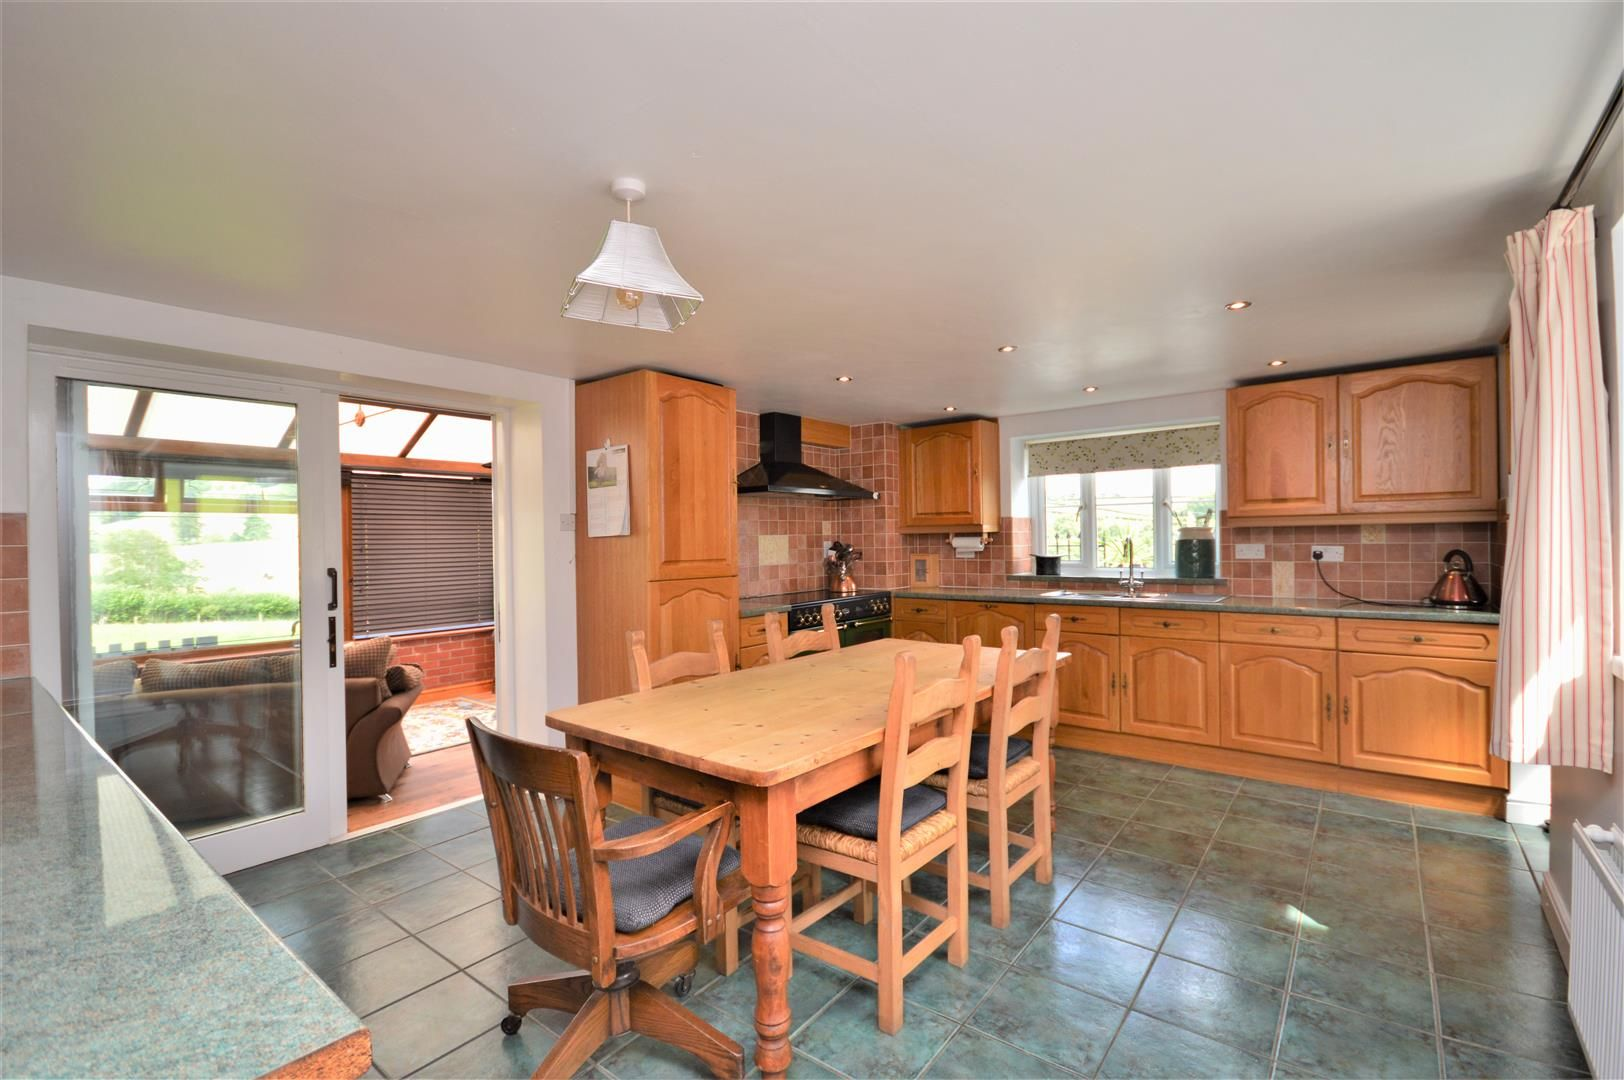 3 bed detached for sale in Orcop  - Property Image 2